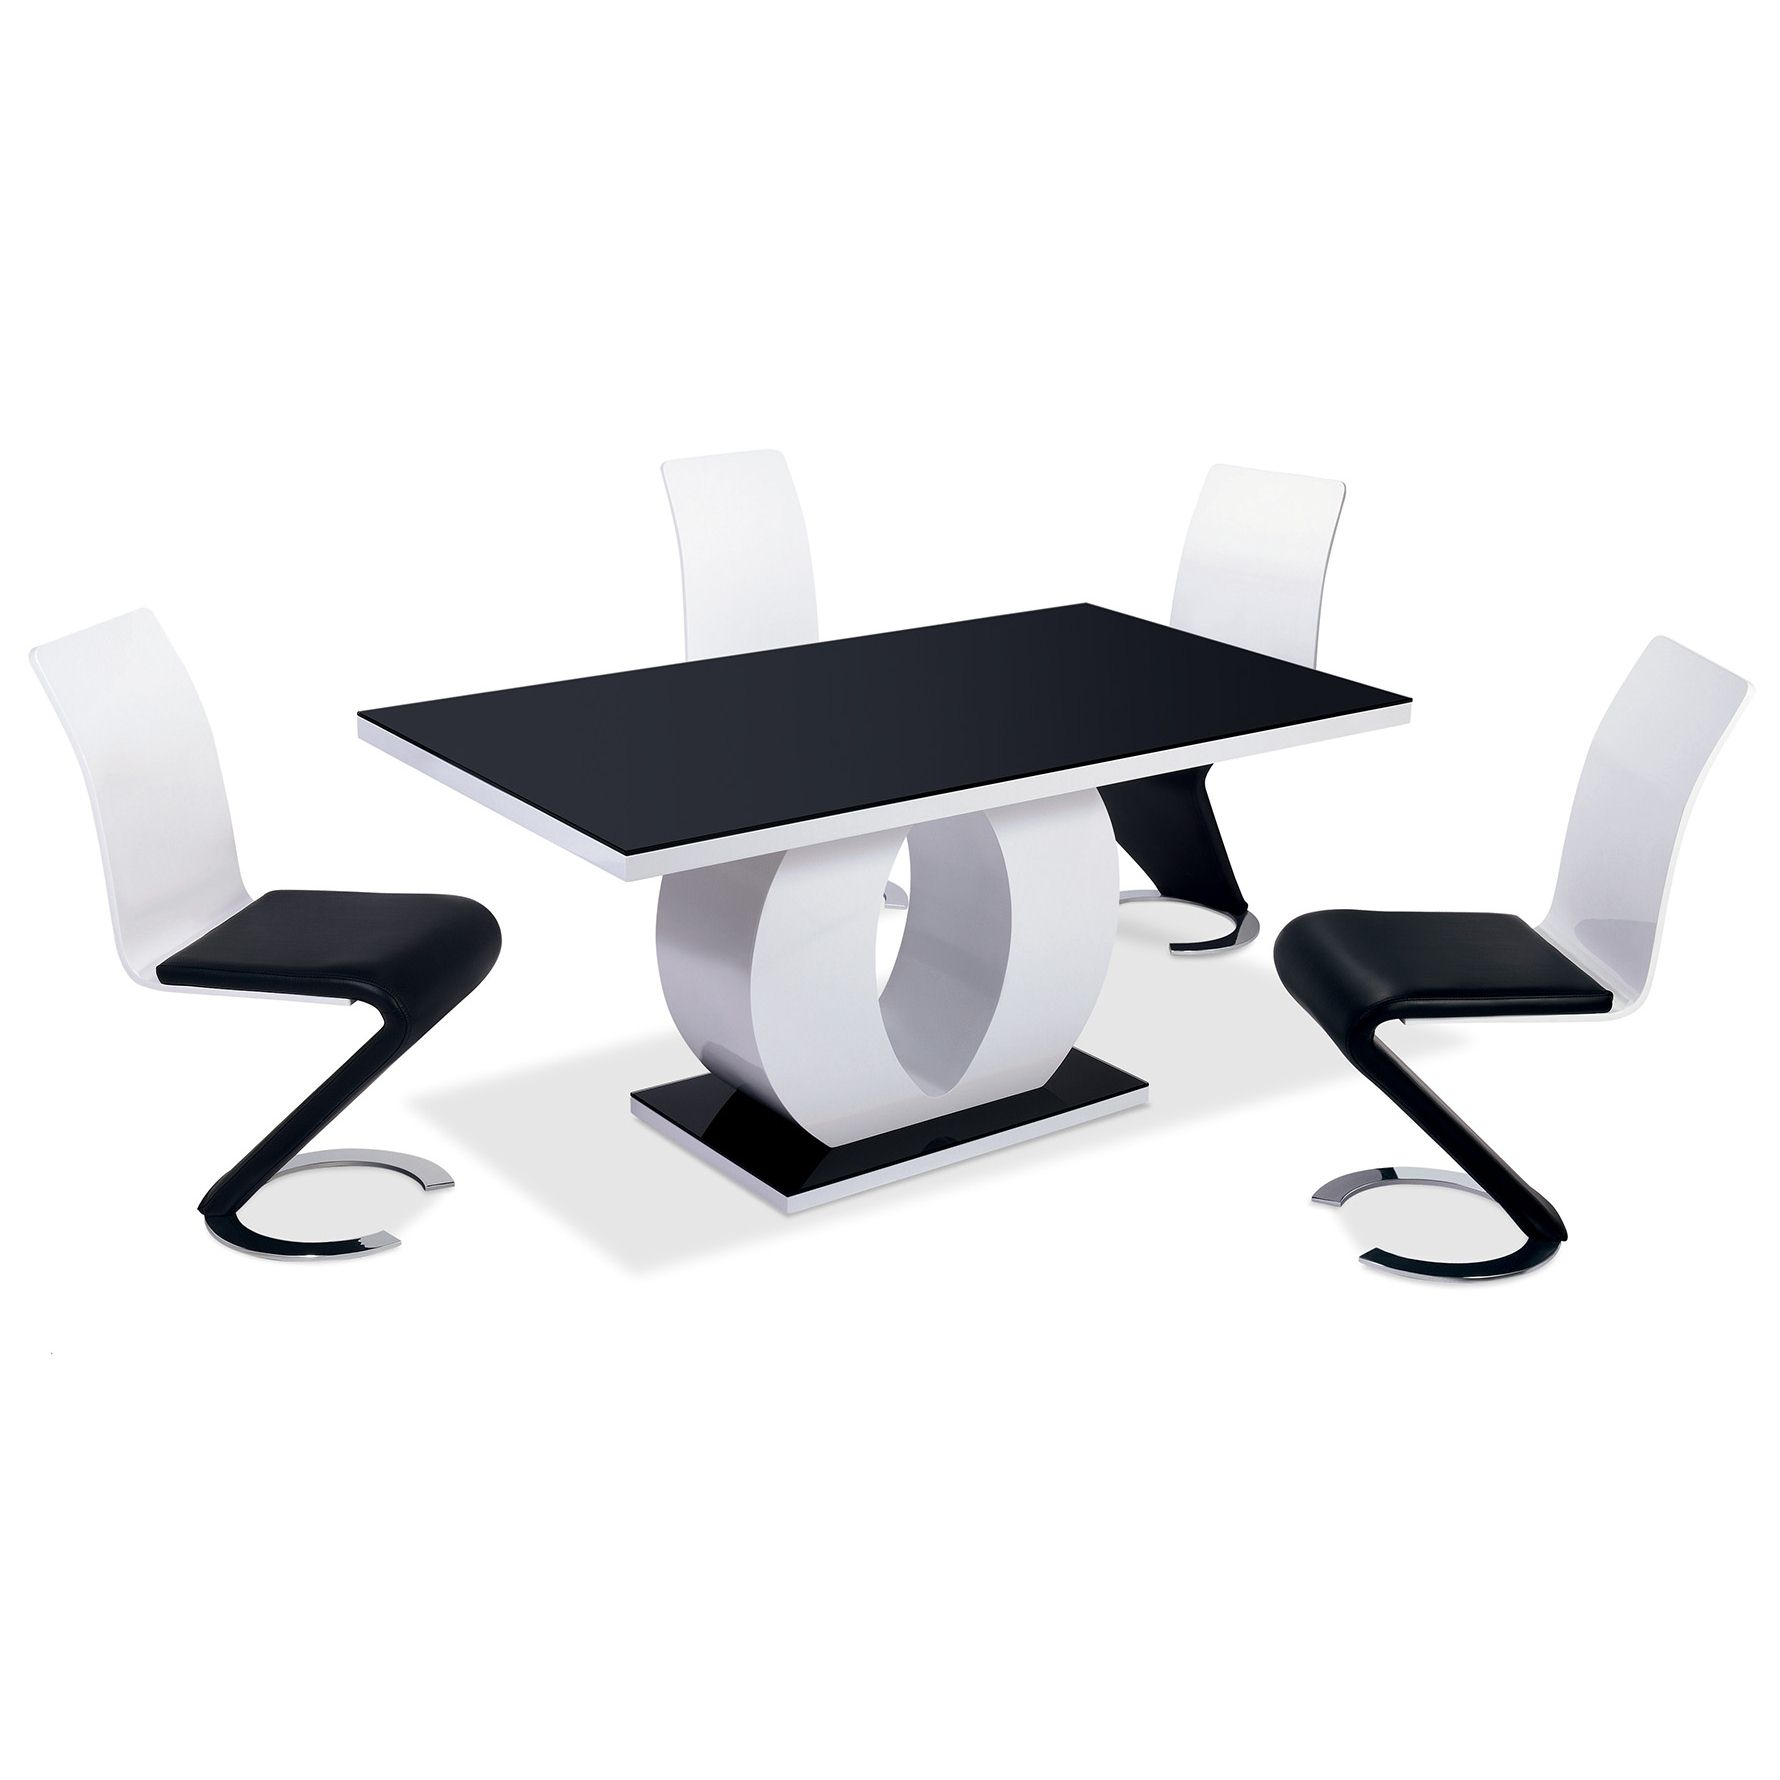 Deco in paris 2 table oamaru 4 chaises design noir et - Chaise noir et blanc design ...